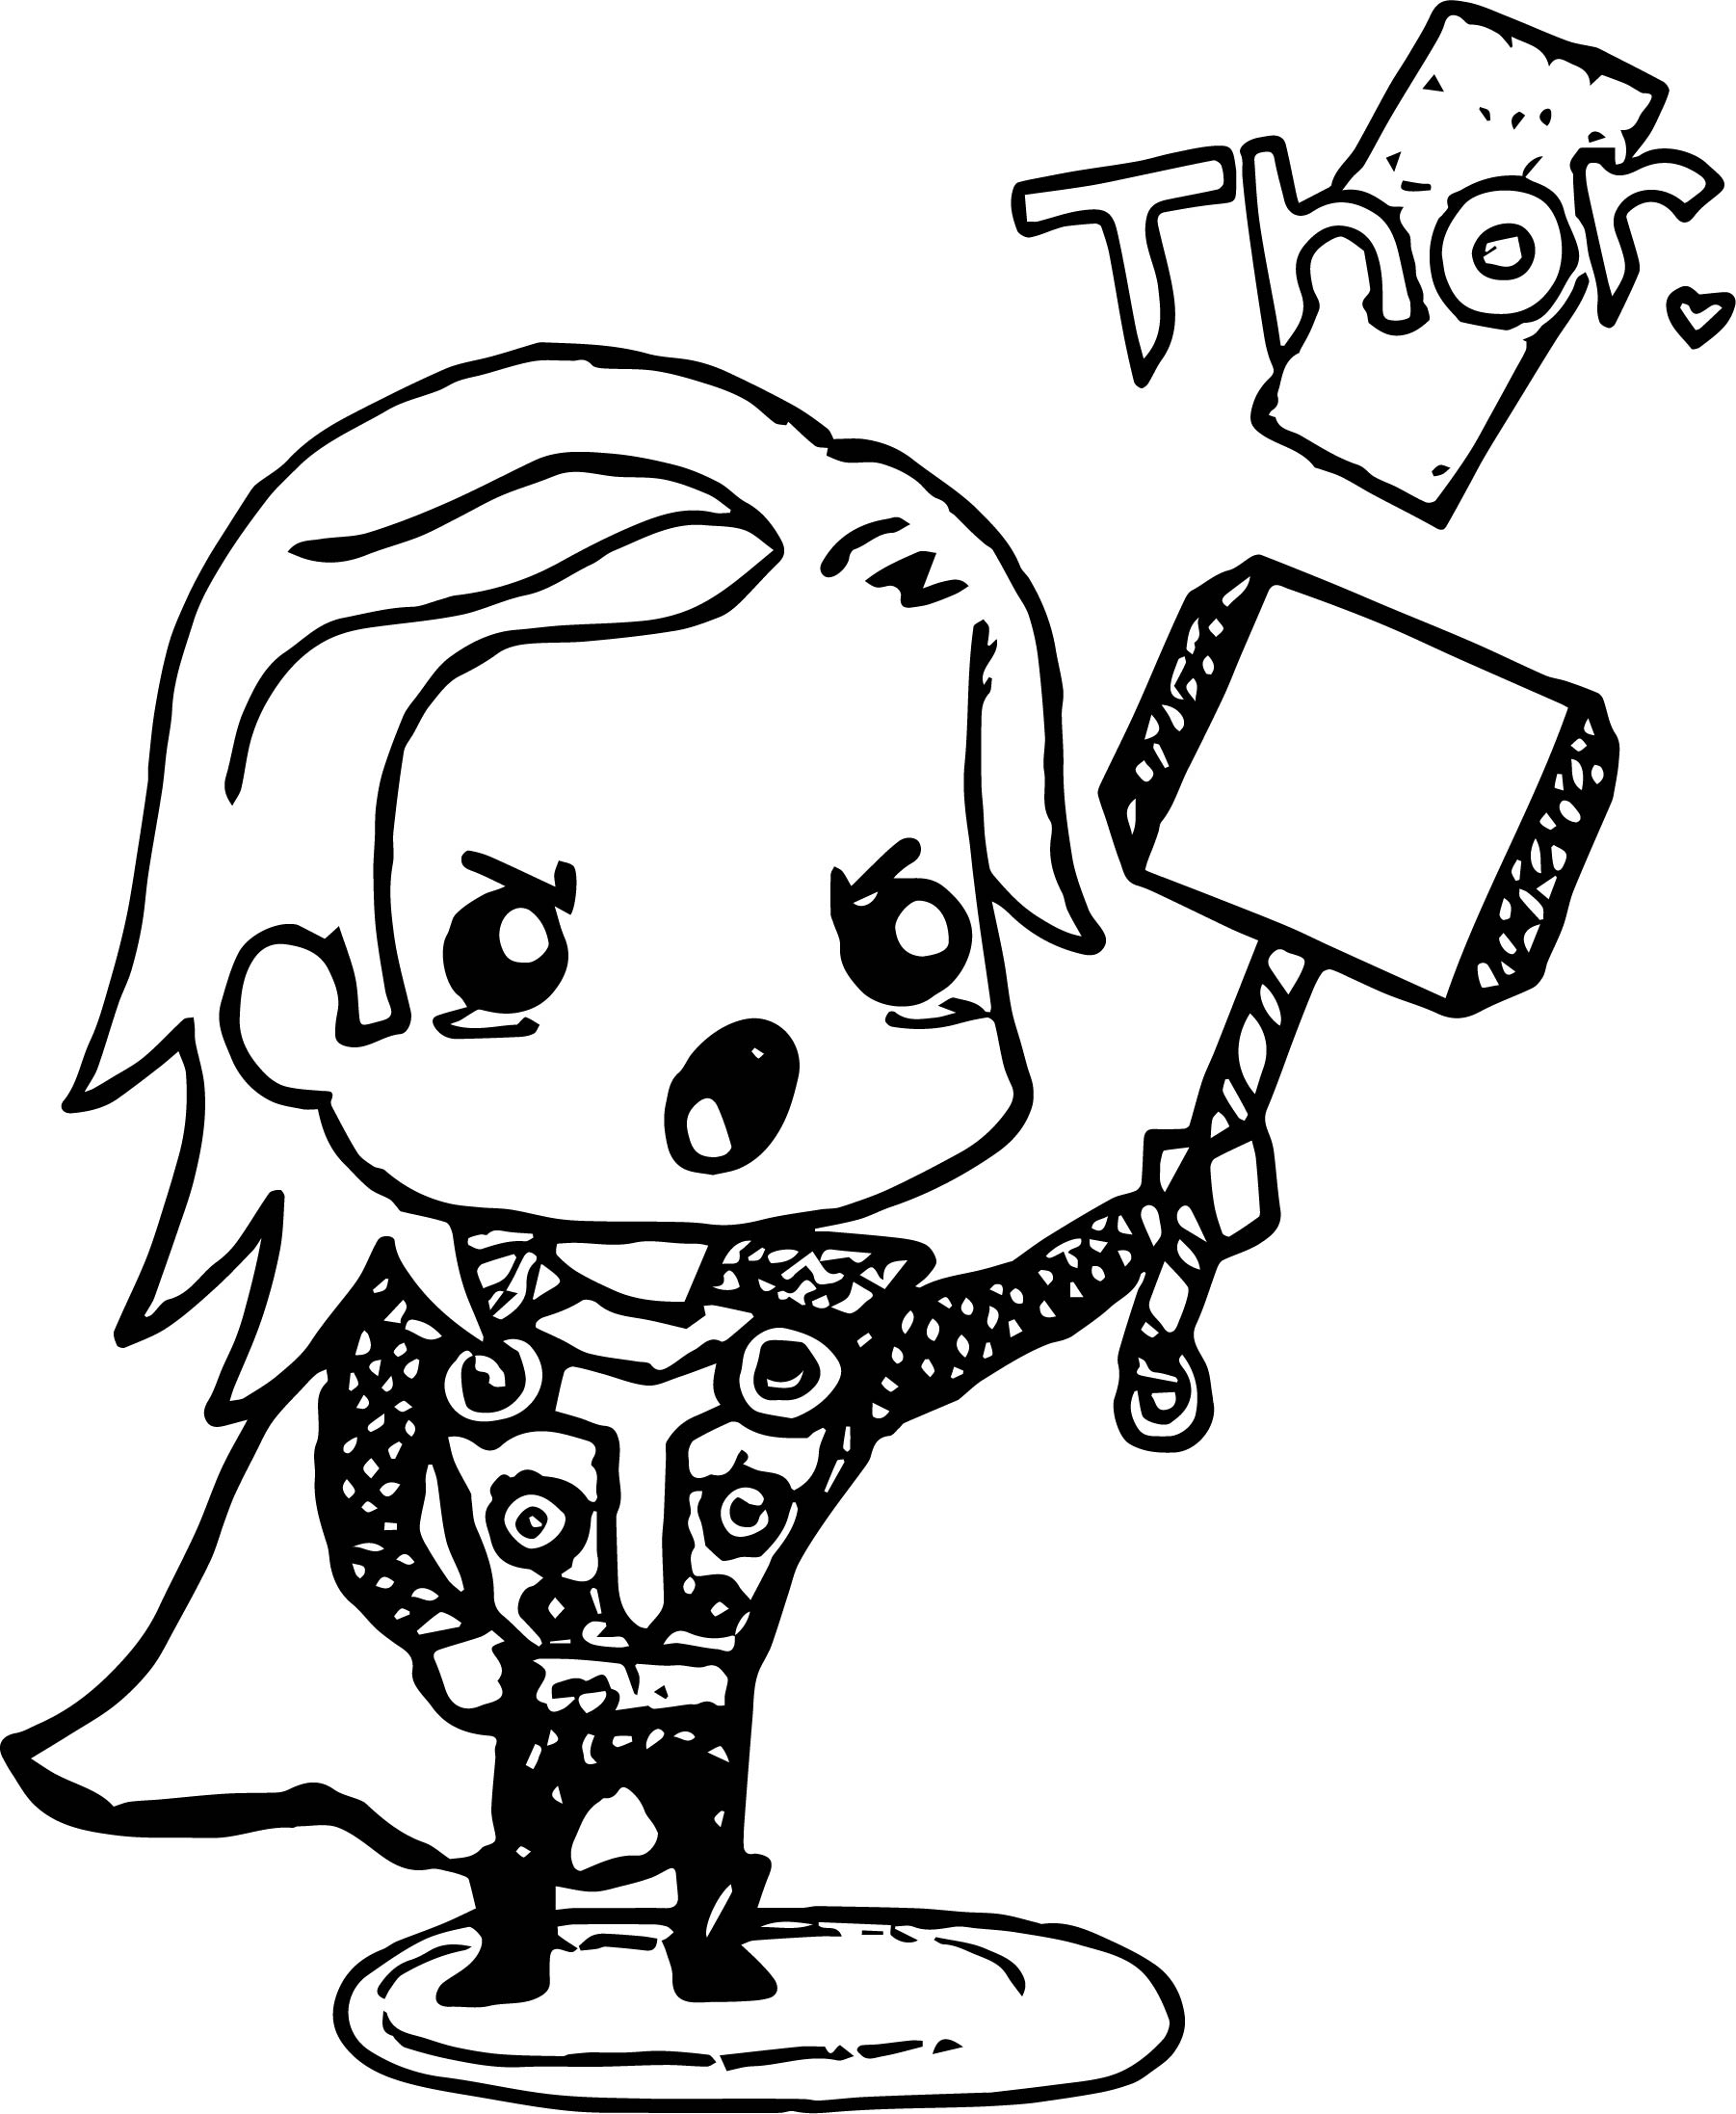 cute marvel coloring pages how to draw iron man chibi superheroes iron man drawing coloring cute marvel pages